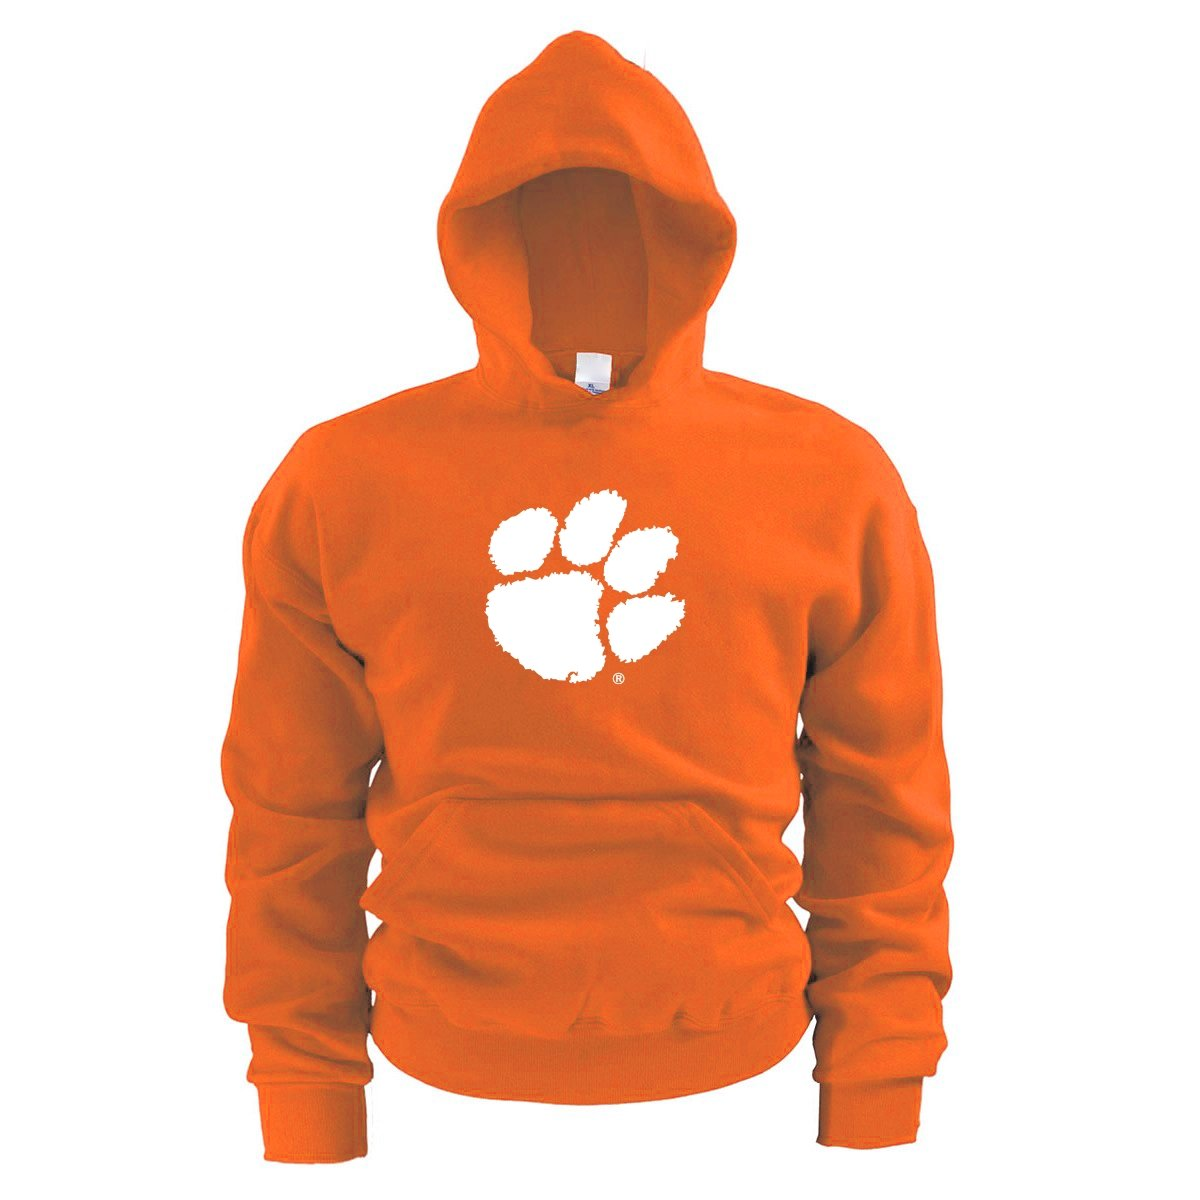 Clemson Tigers Toddler Hoodie With Paw Print - Mr. Knickerbocker